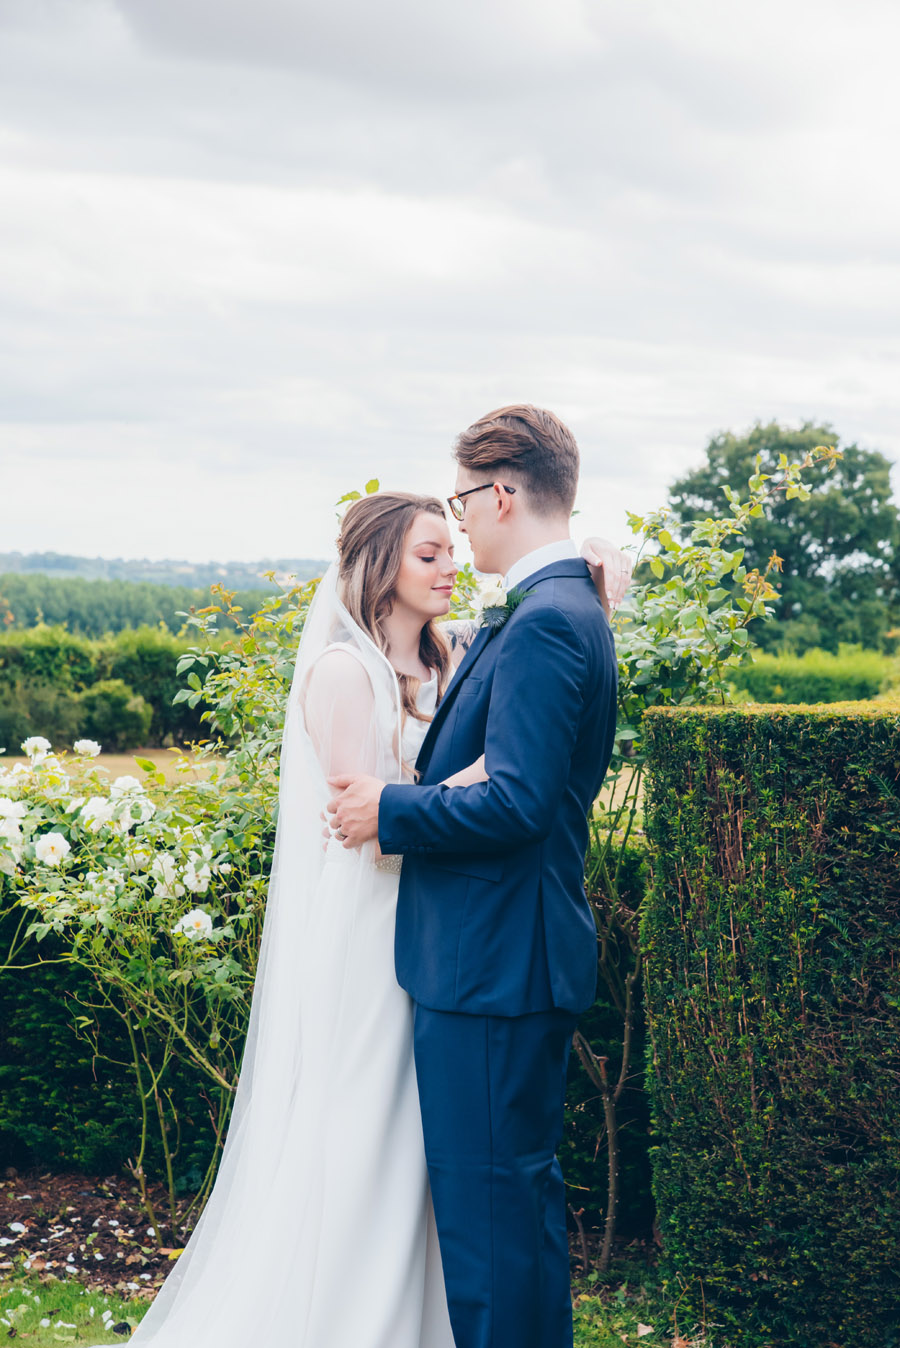 Timeless Elegance and beautiful micro wedding inspiration at New Lodge Lawns (20)